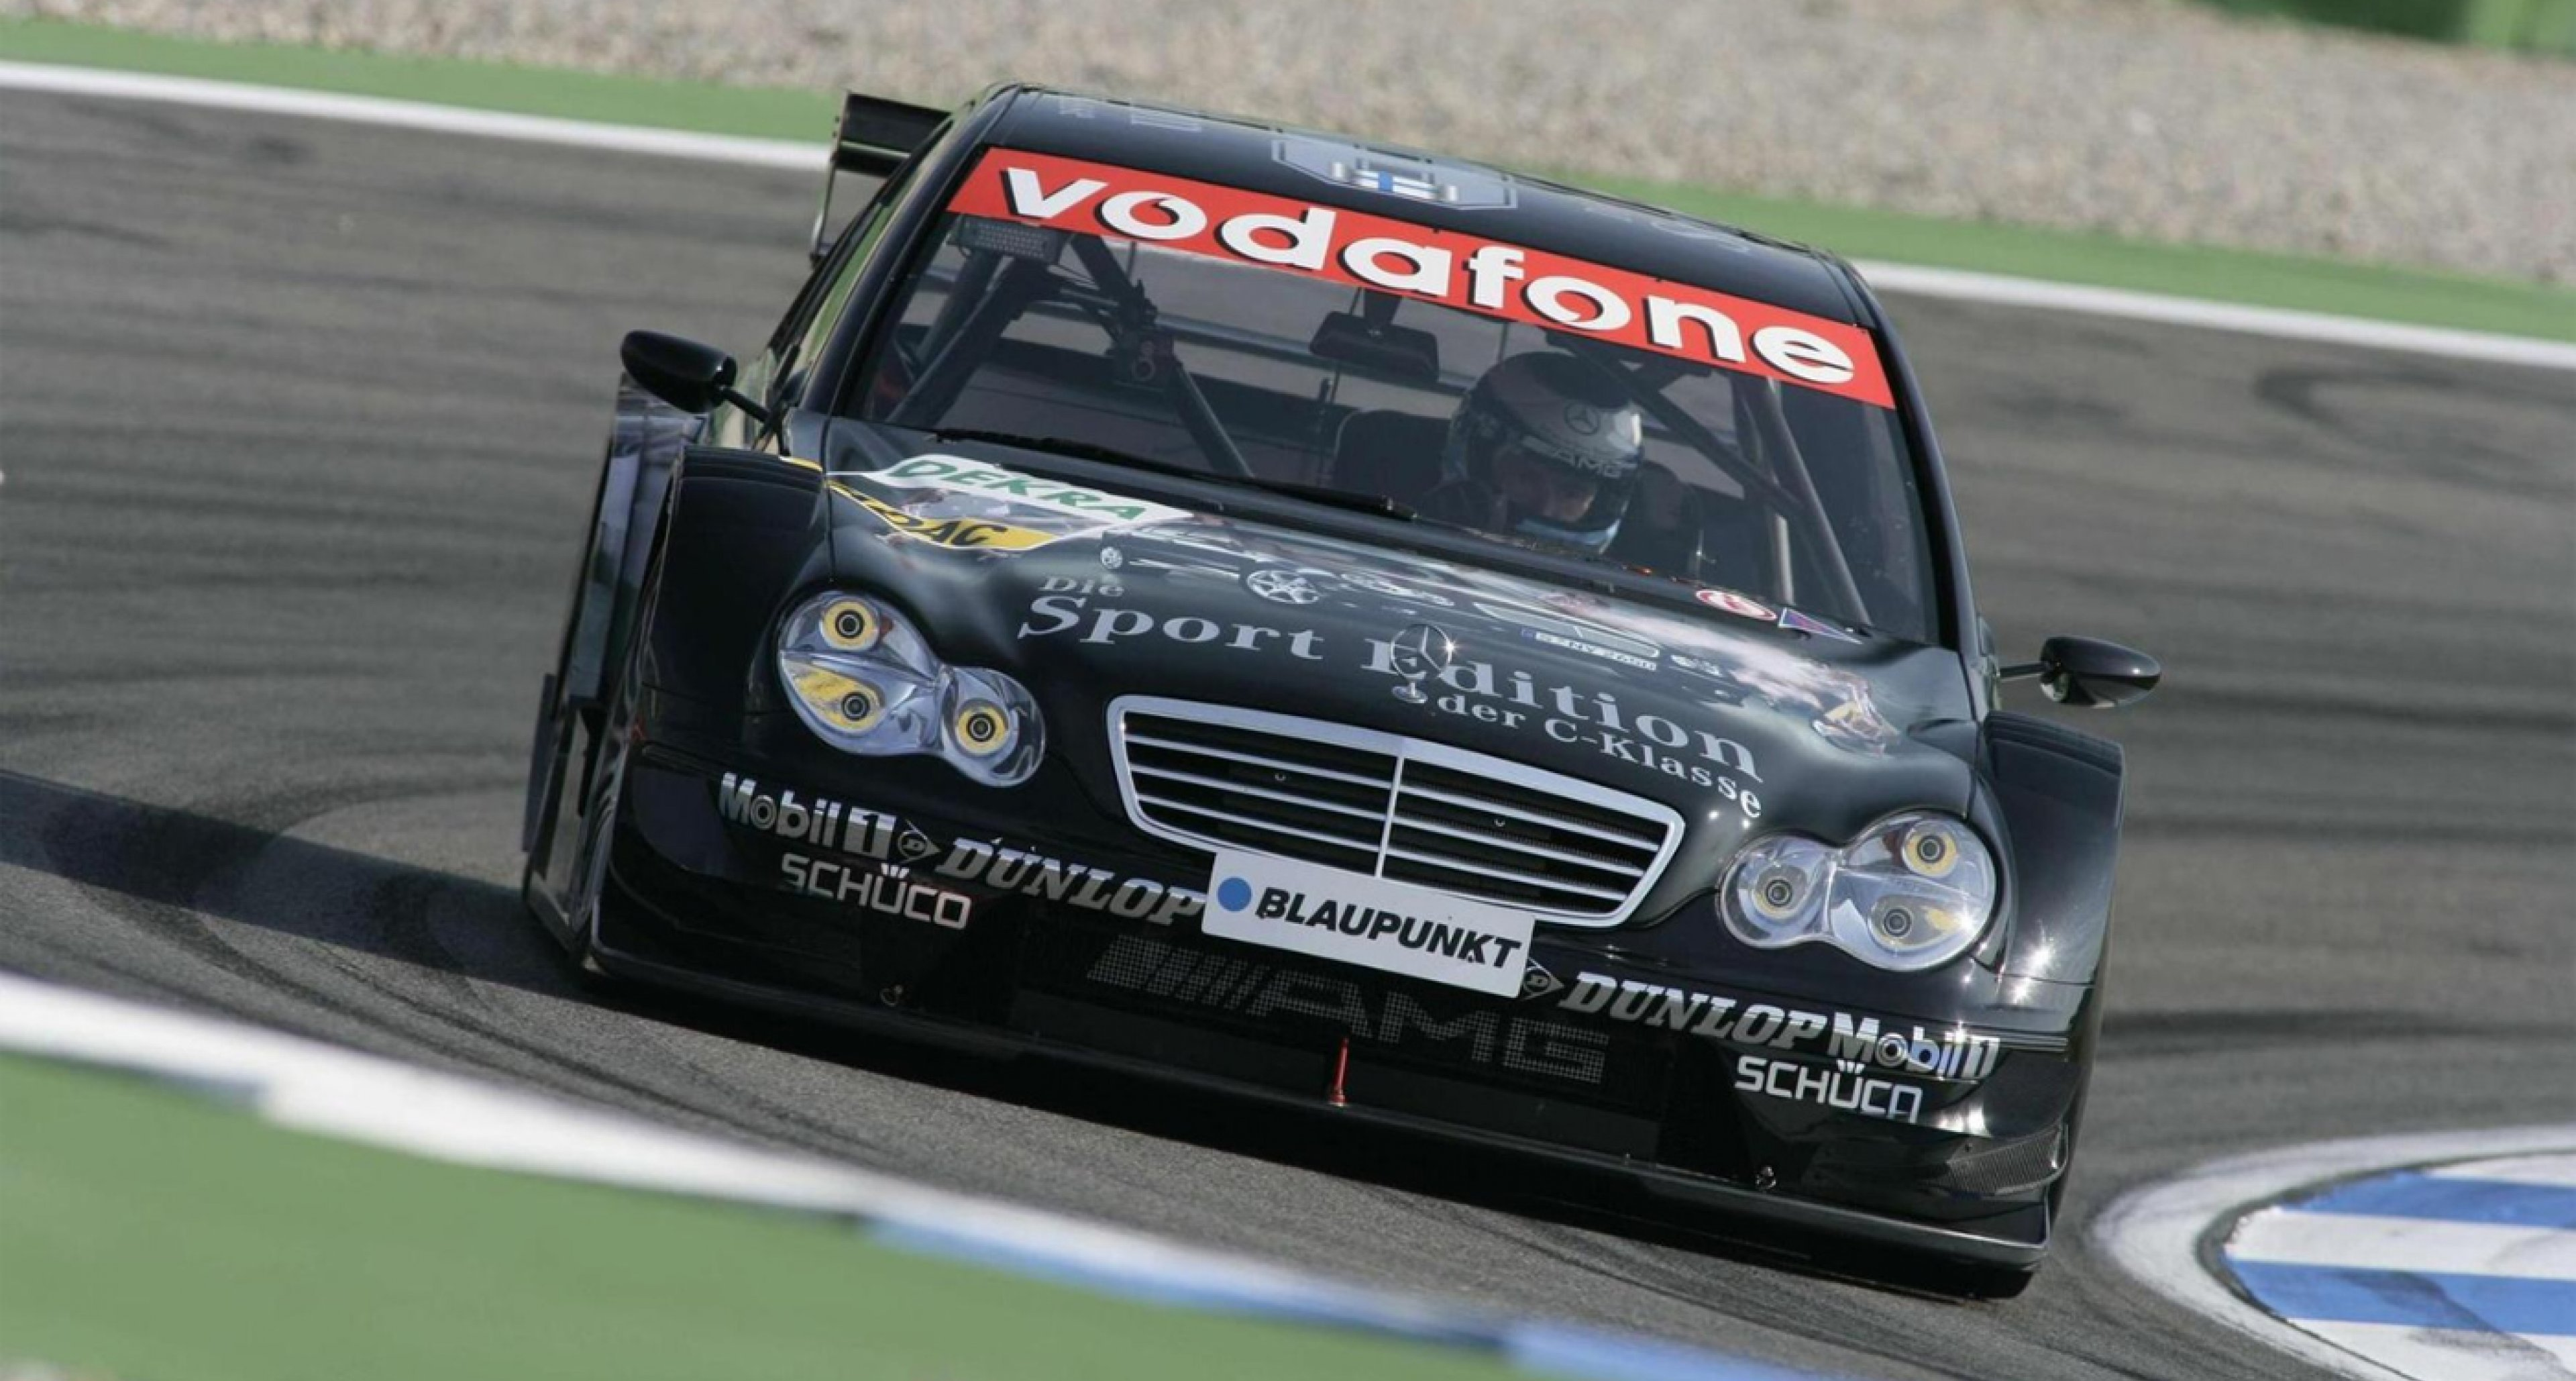 Lot 23: 2005 AMG-Mercedes- C-Class DTM Touring Car Racing Saloon 'The Ex-Mika Hakkinen' (€ 400,000 - 600,000)